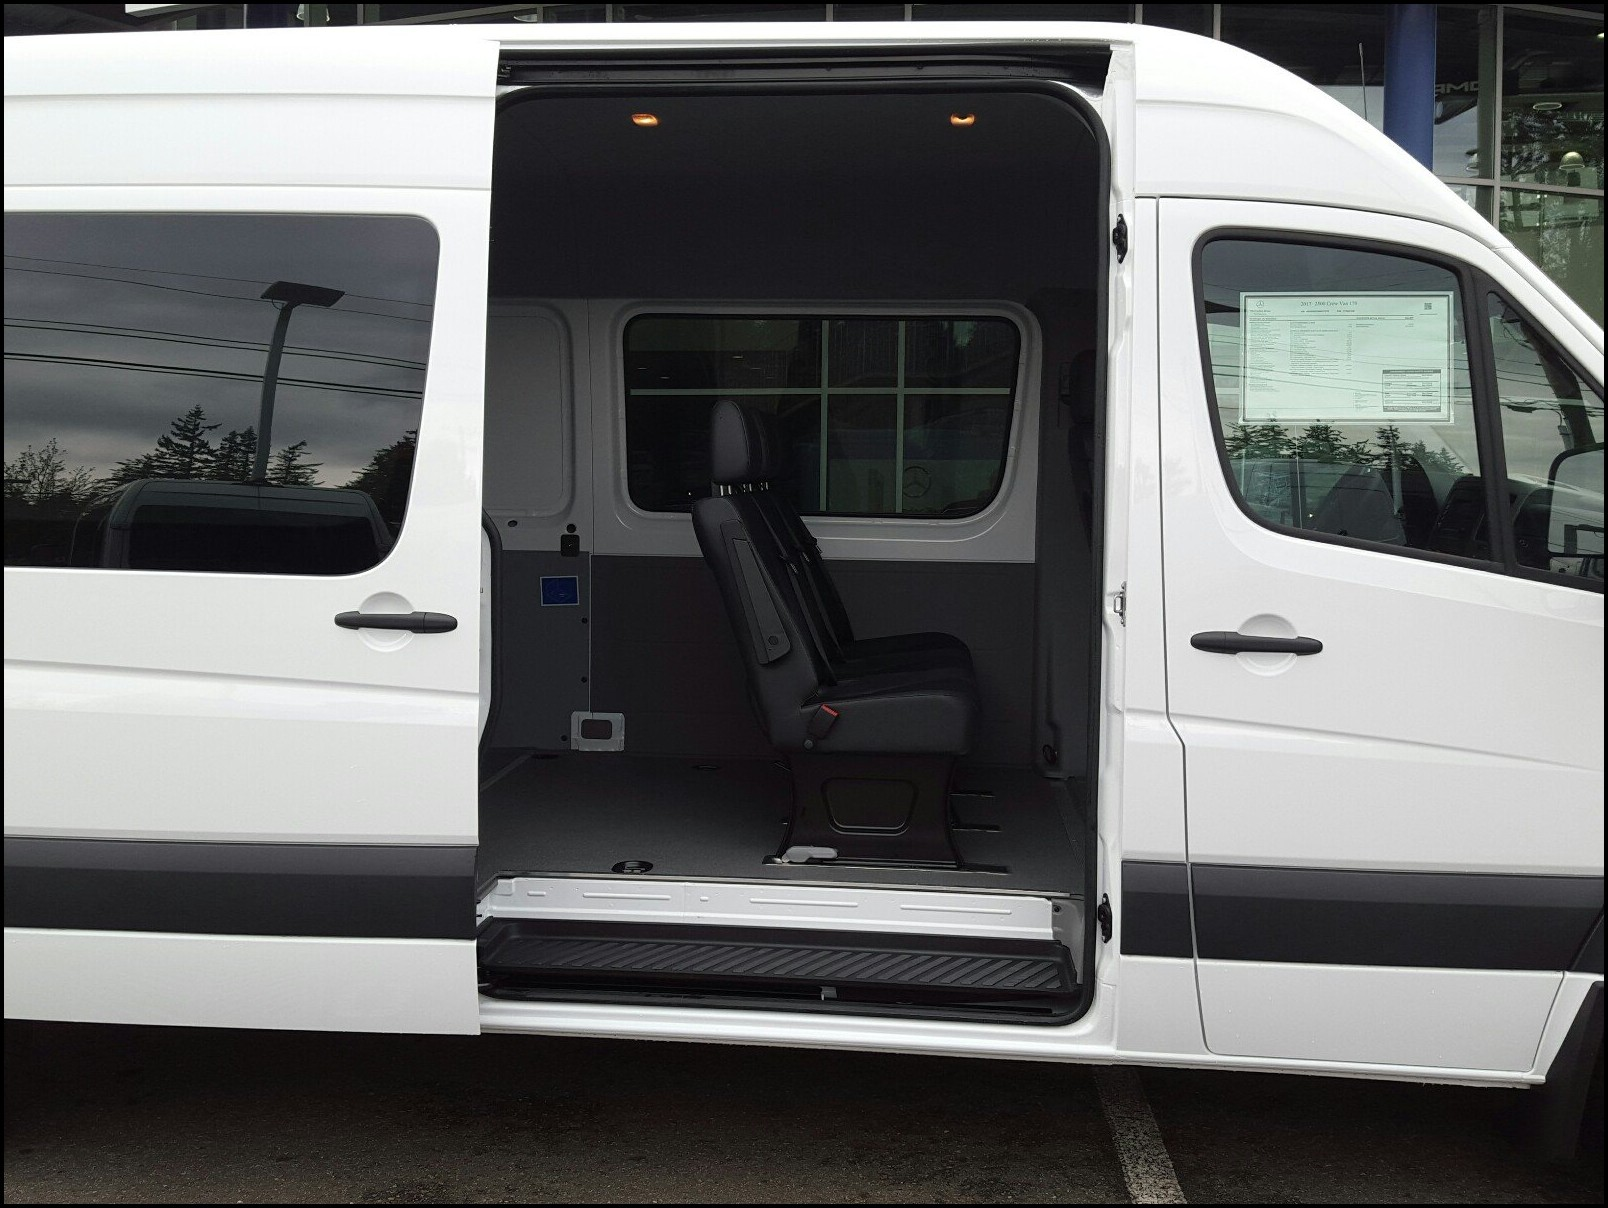 2018 Mercedes Sprinter RV Interior Capacity